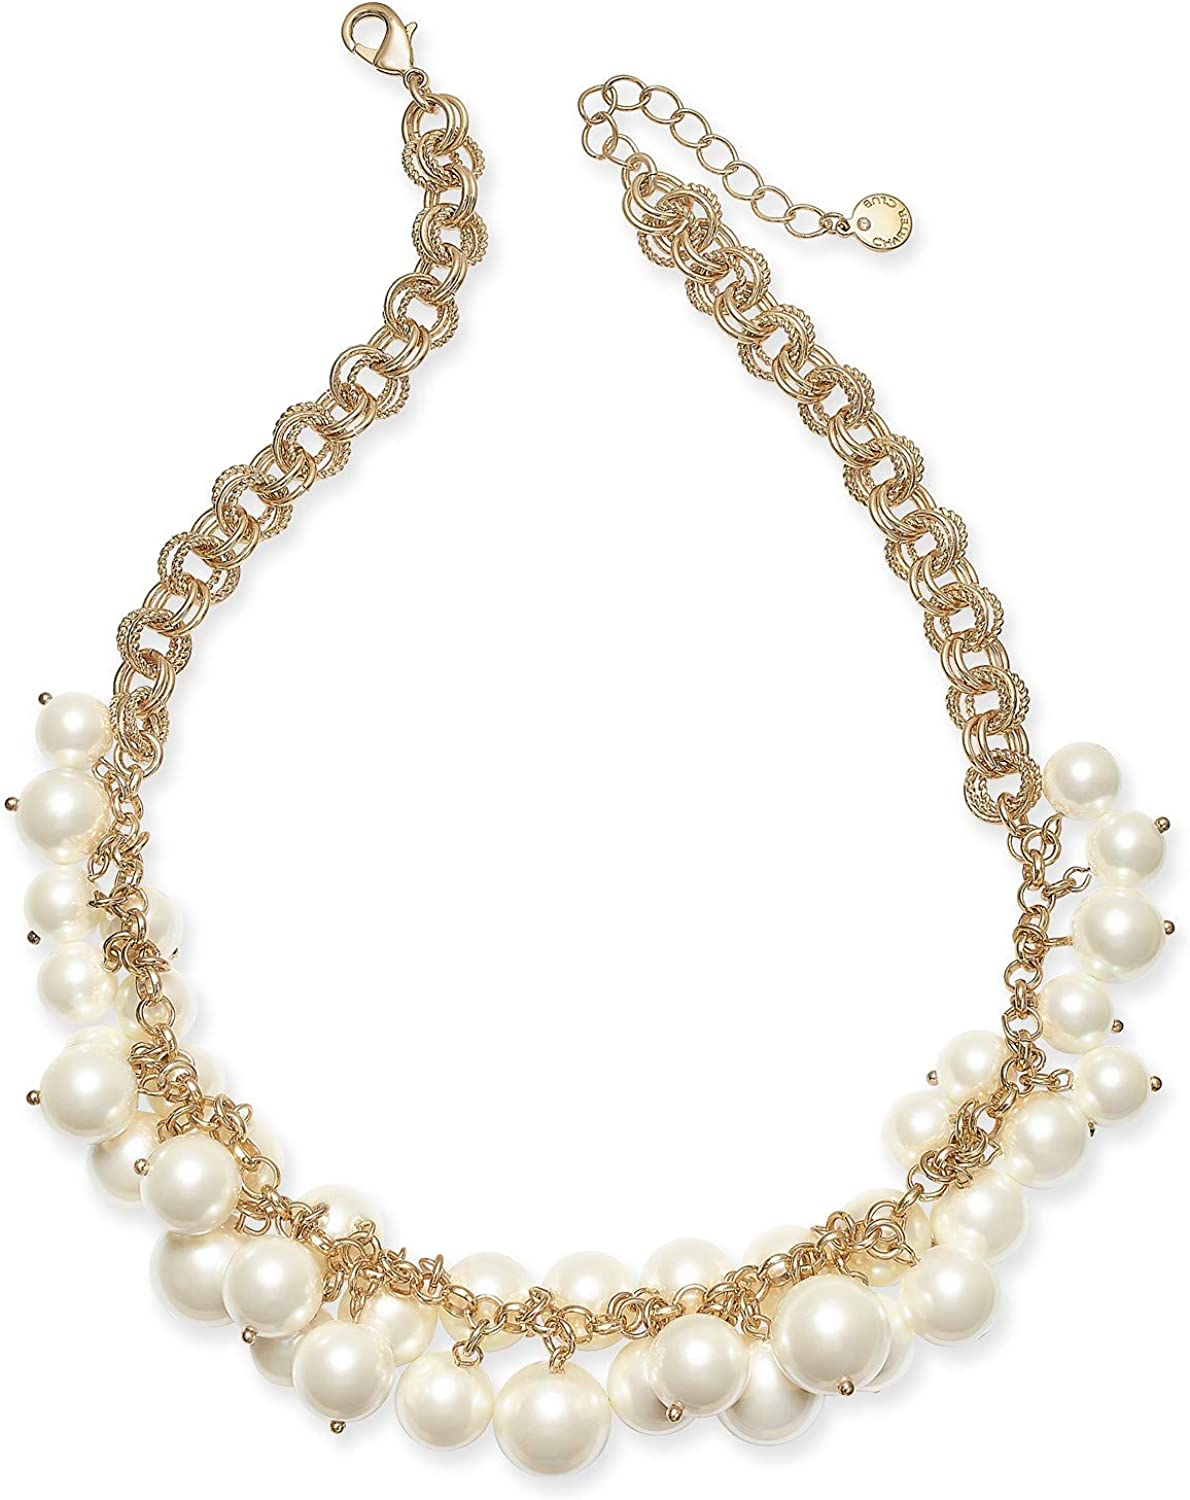 Charter Club Gold-Tone Shaky Faux Pearl Collar Necklace, 17' + 2